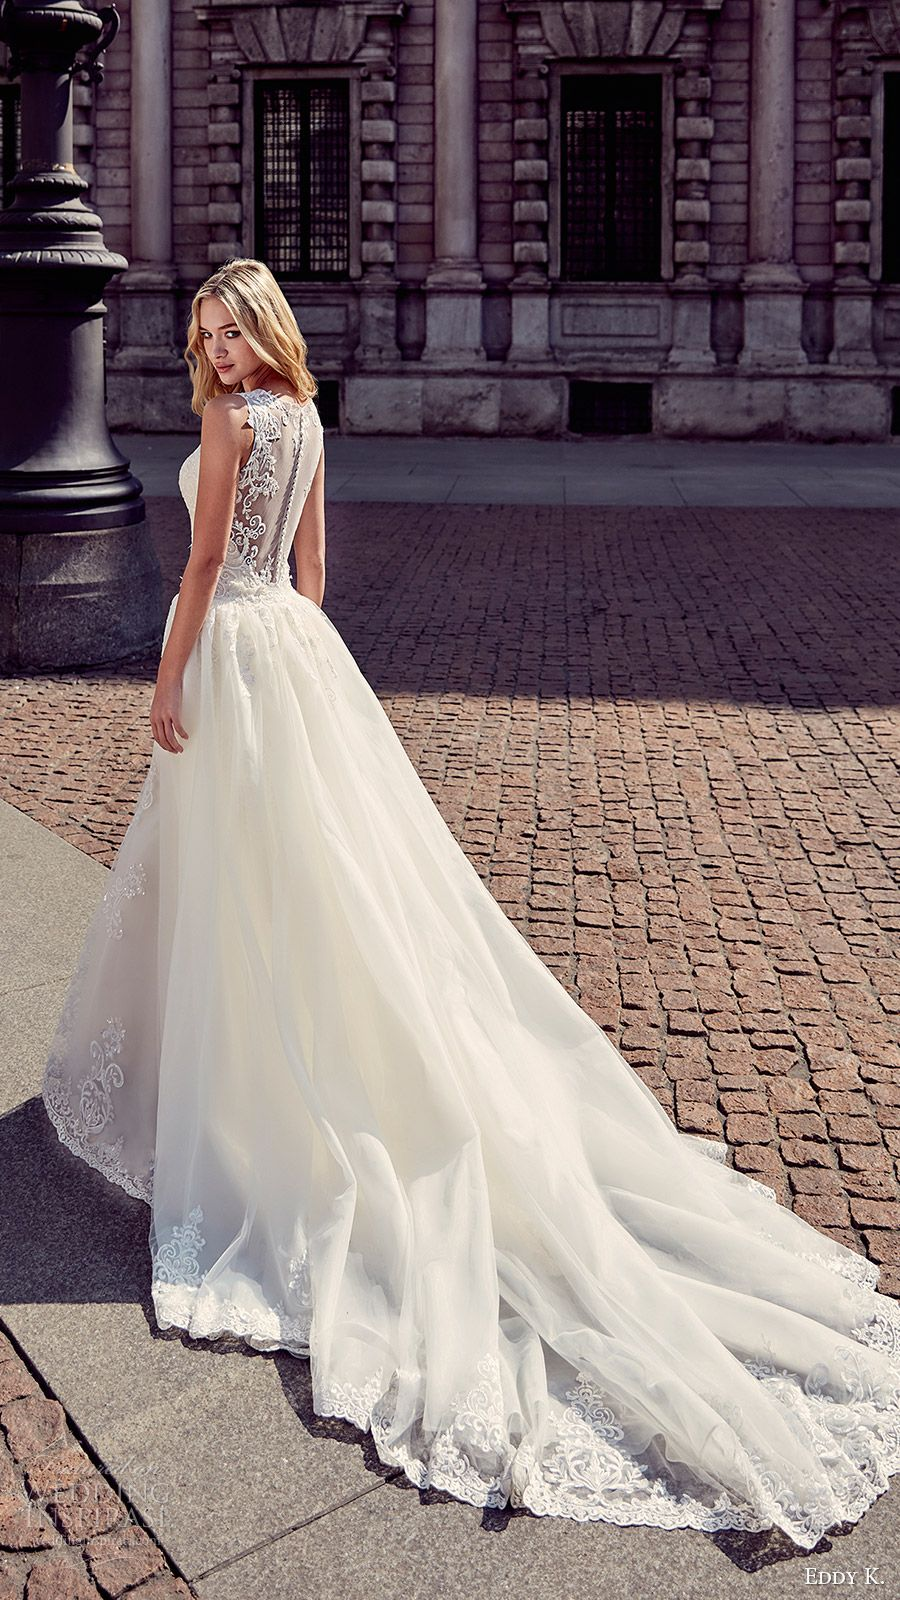 Wedding dresses ball gown lace  eddy k milano bridal  sleeveless vneck sheath lace wedding dress